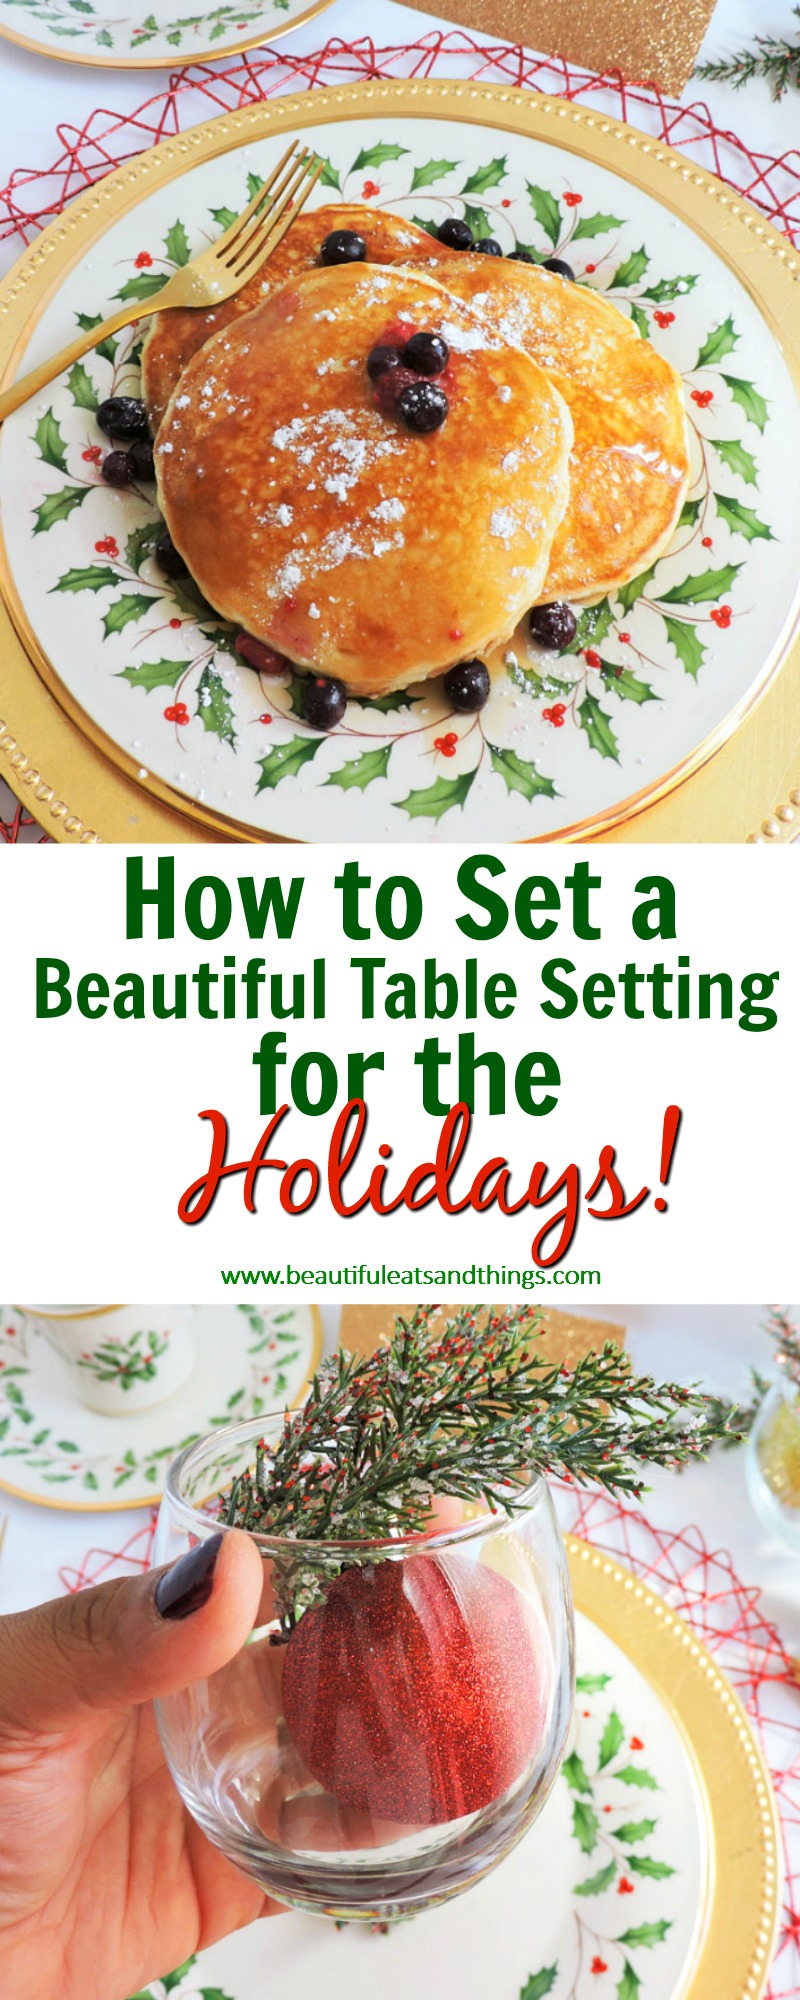 How to Set a Beautiful Table Setting for a Holiday Gathering including Wayfair Holiday Dinnerware set with gold silverware and Christmas decorations